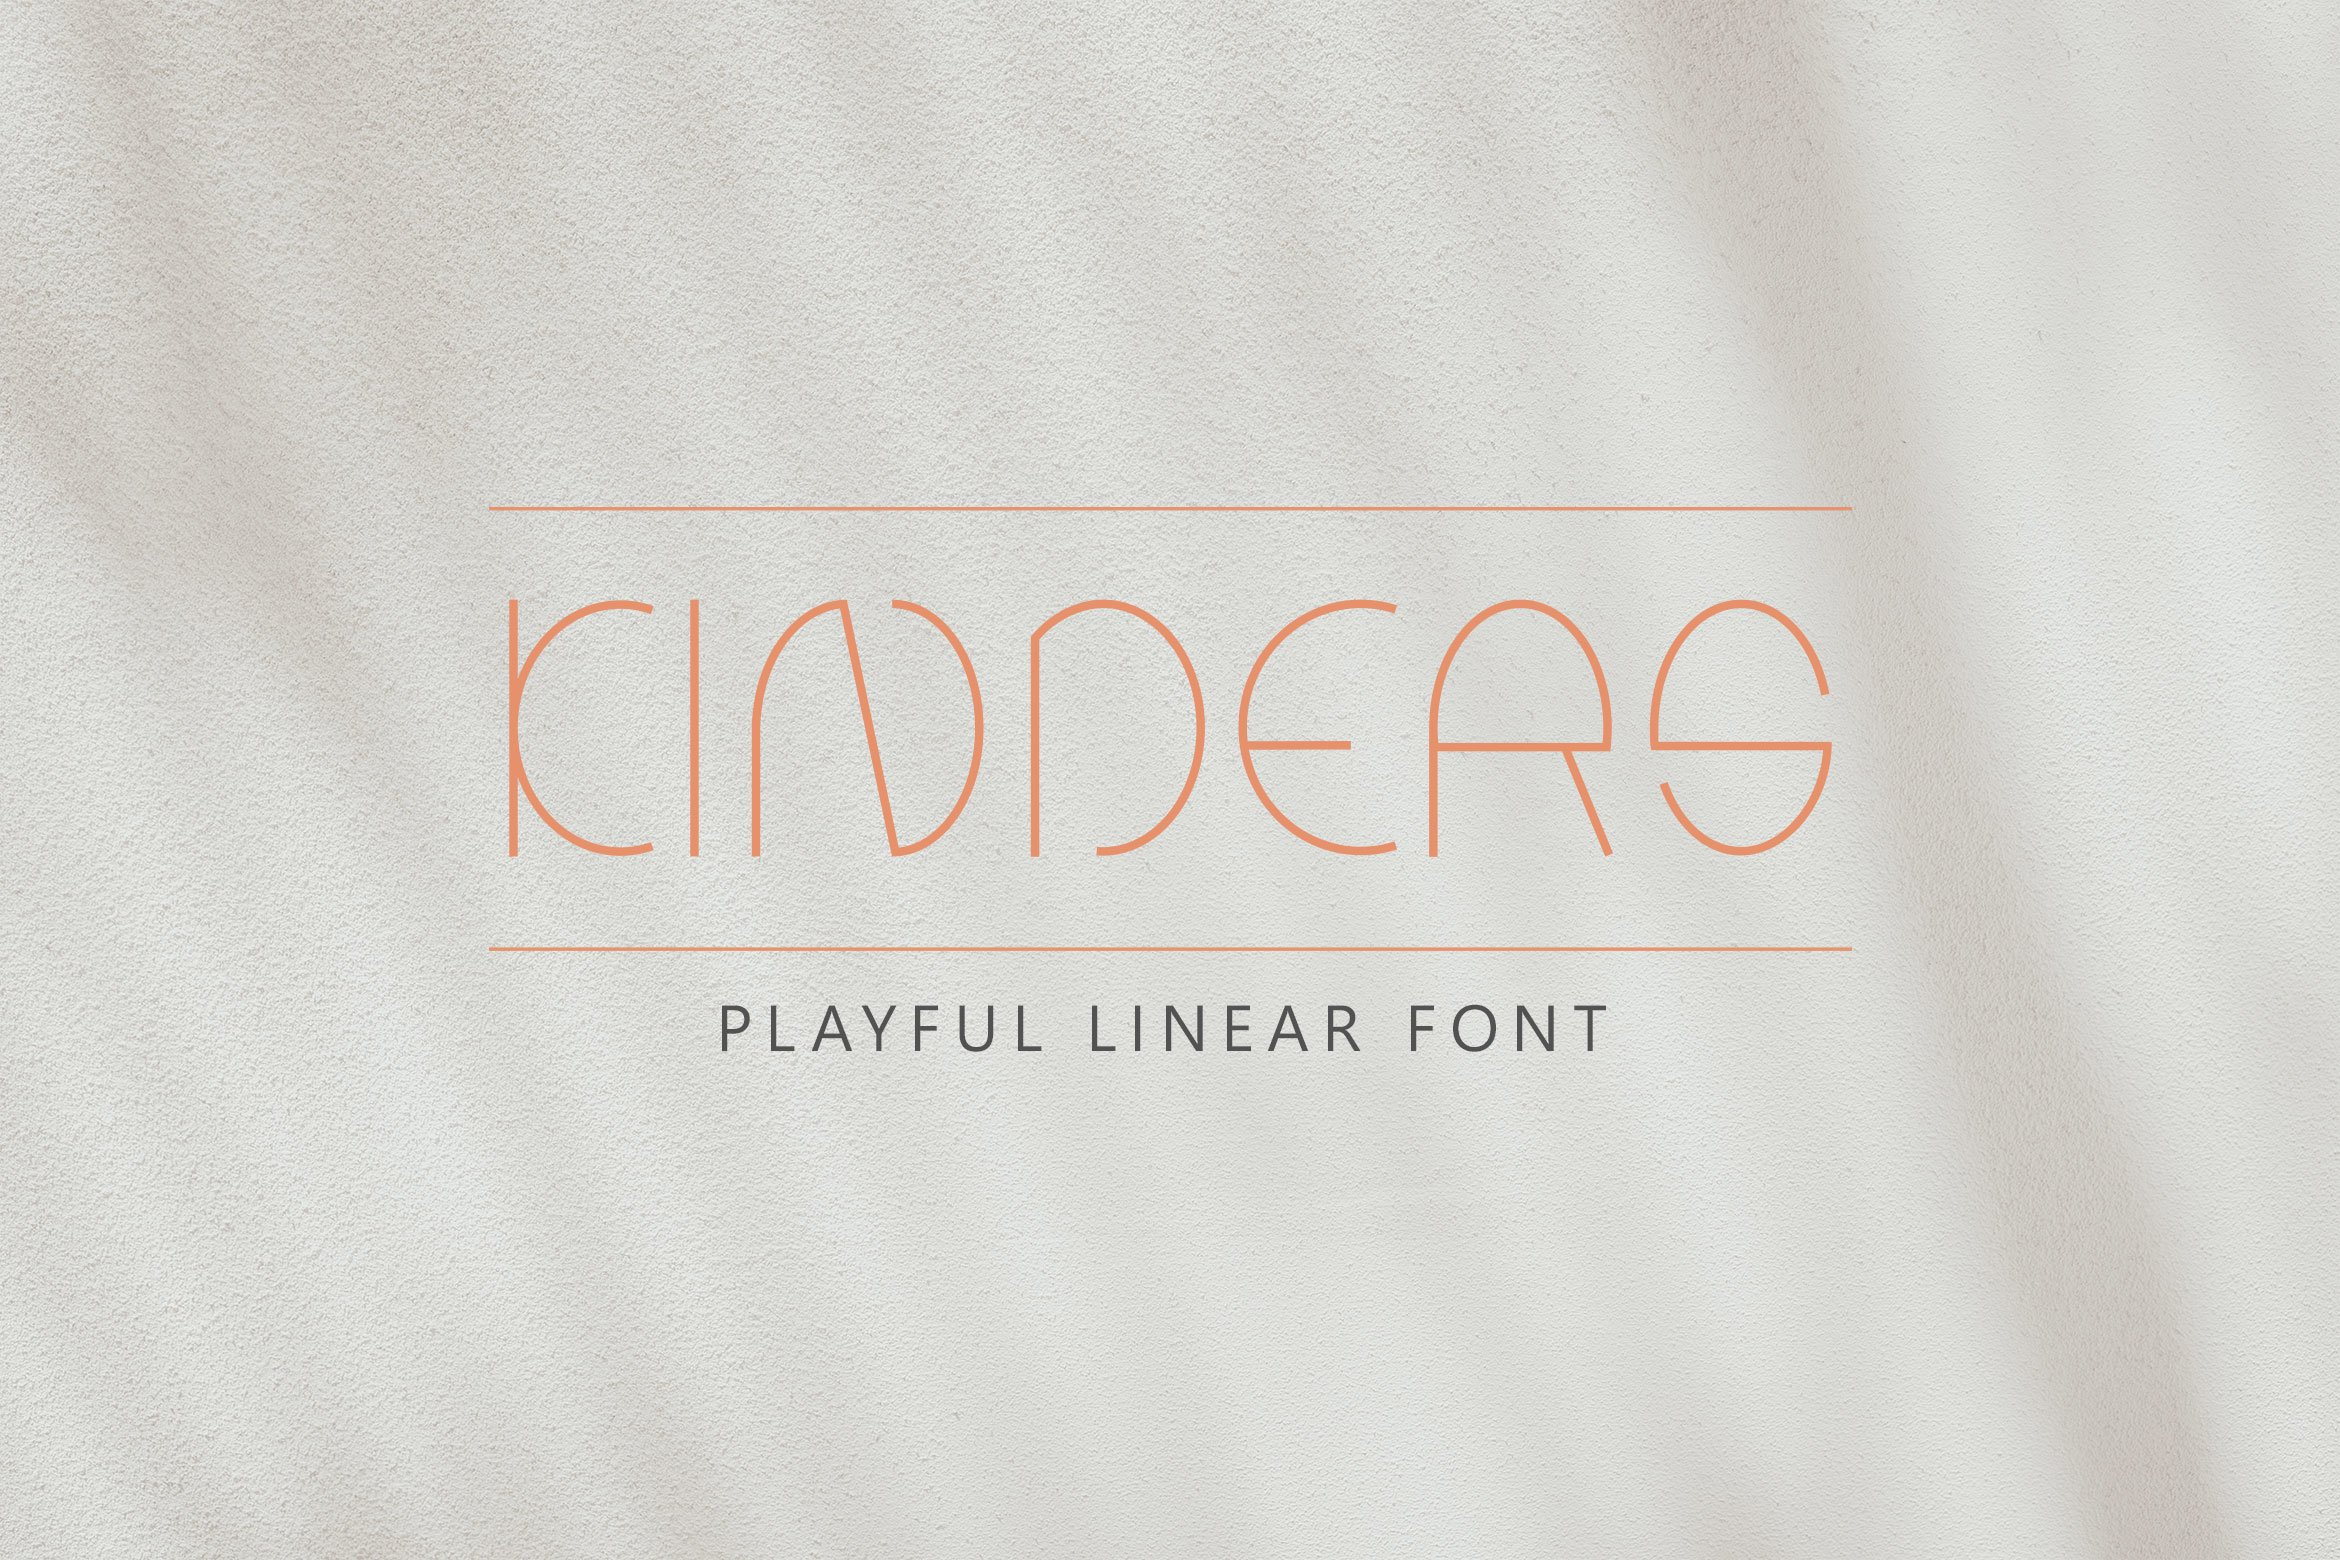 Kinders - Playful Linear Font example image 1